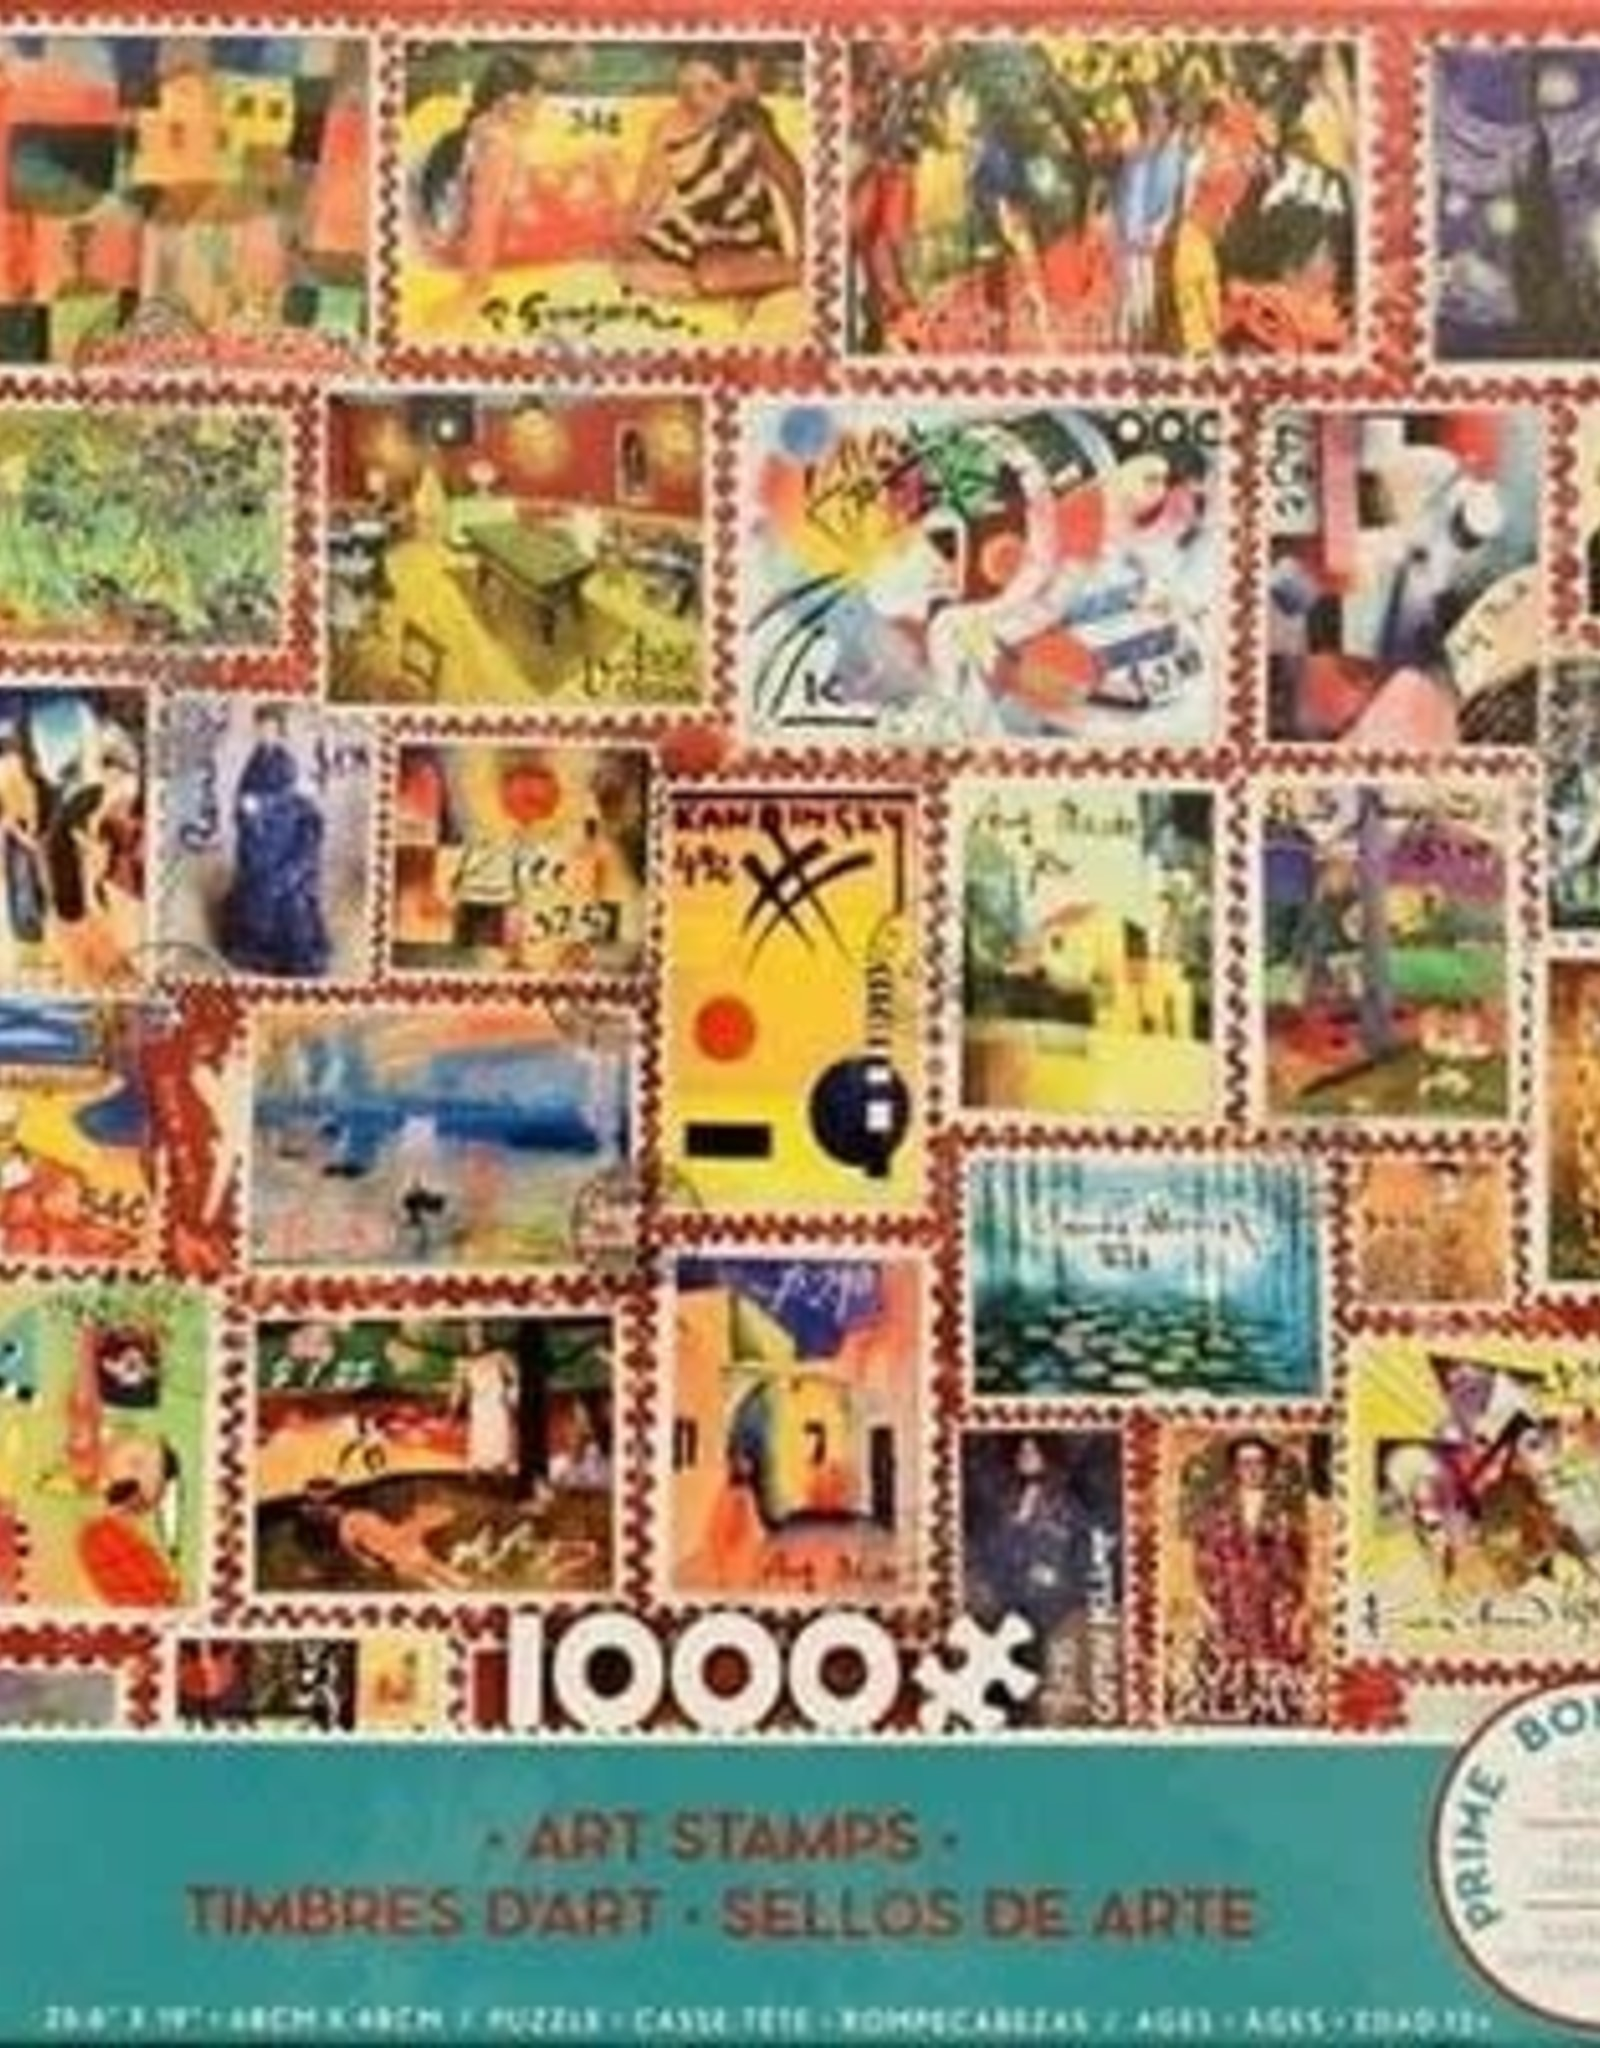 CEACO 1000pc puzzle - Art Stamps